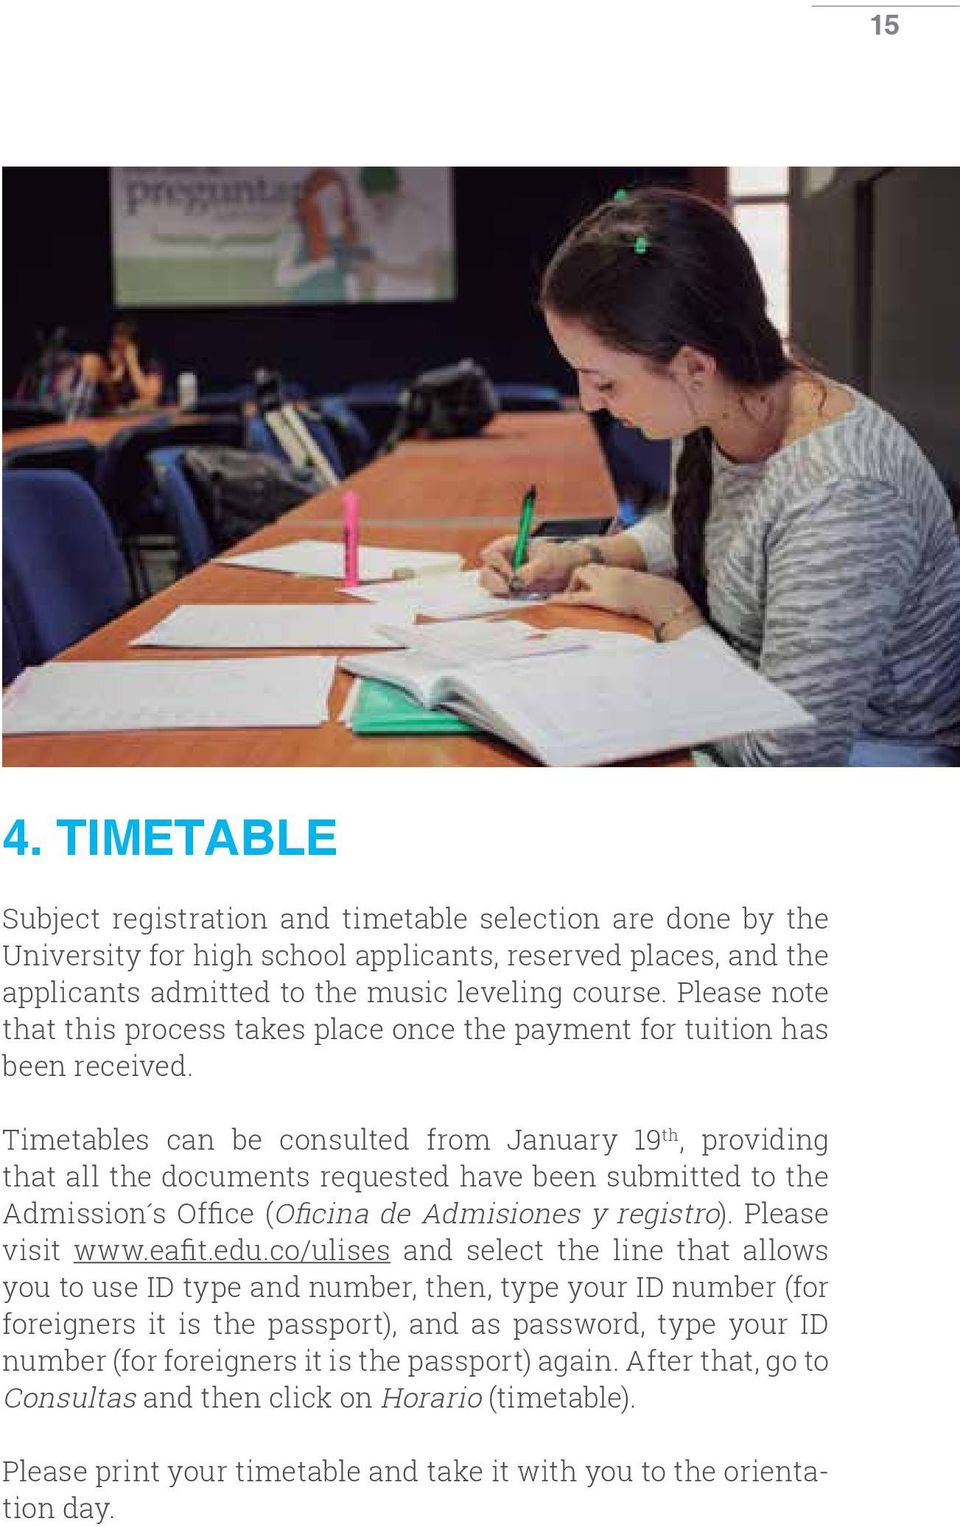 Timetables can be consulted from January 19 th, providing that all the documents requested have been submitted Admission s Office (Oficina de Admisiones y registro). Please visit www.eafit.edu.